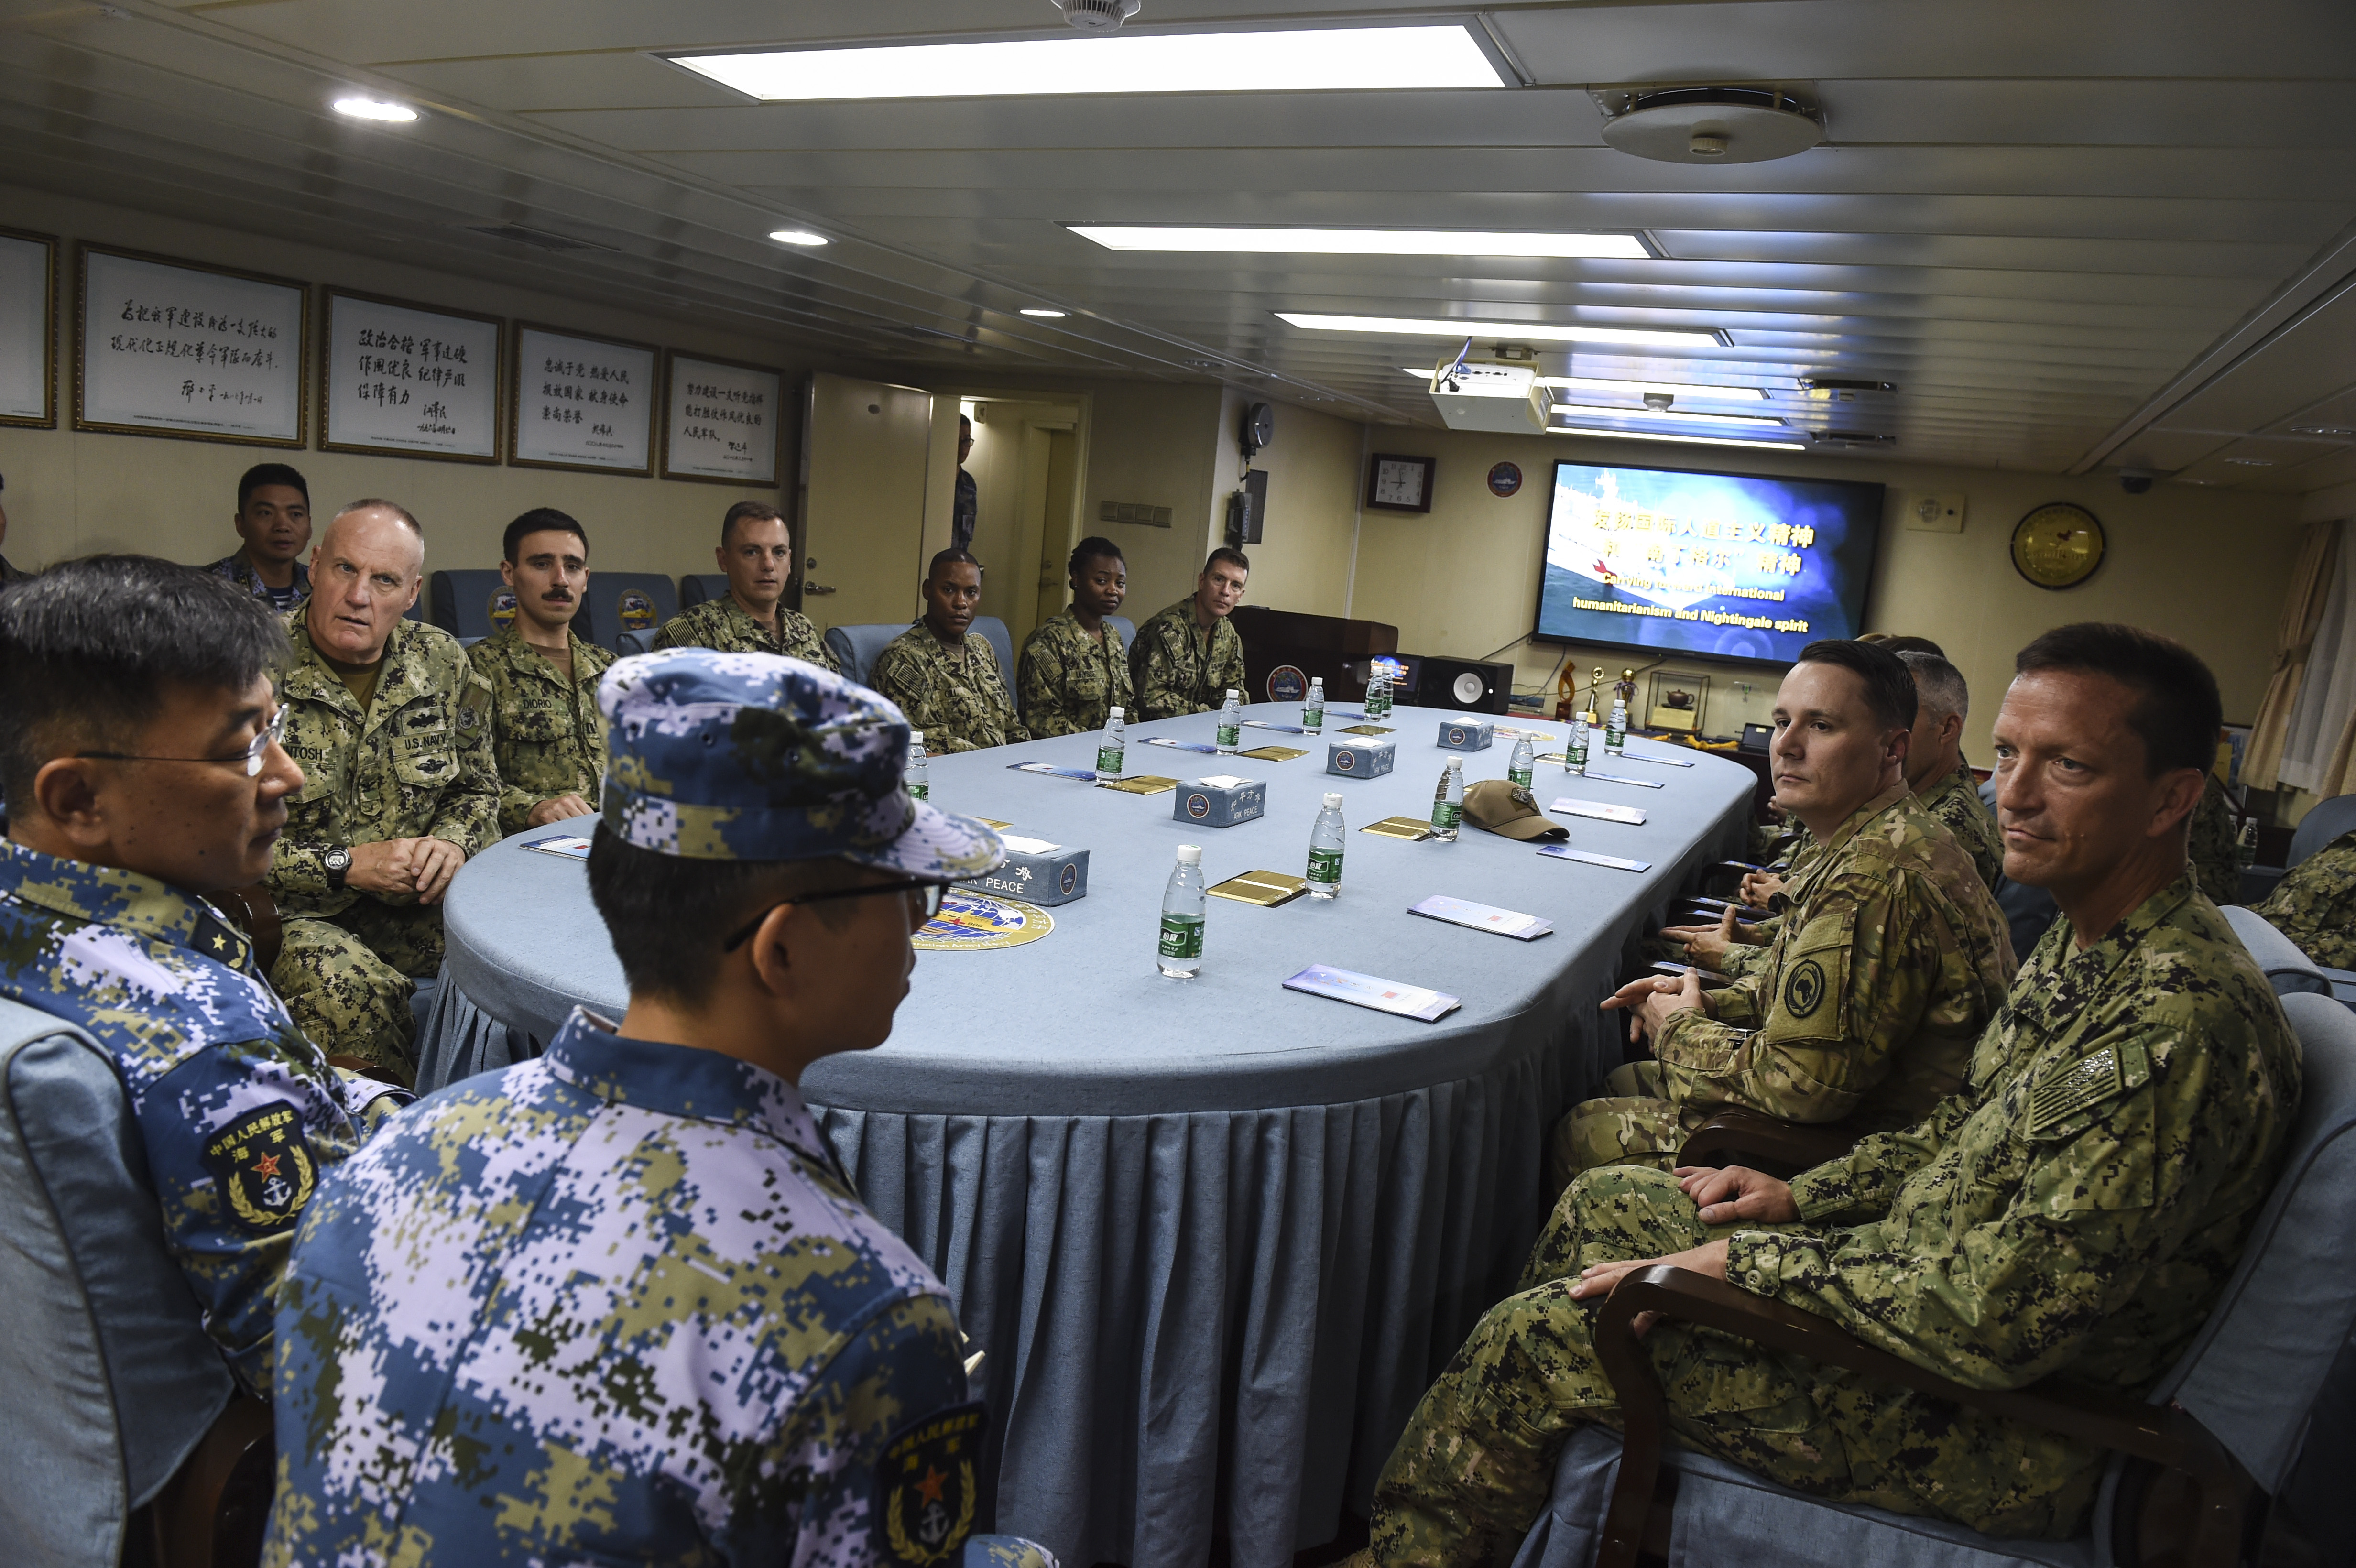 U.S. service members assigned to Camp Lemonnier met with Rear Admiral Guan Bolin, mission commander of China's hospital ship, Ark Peace, in the Port of Djibouti, August 28, 2017. Medical personnel from Camp Lemonnier visited the Ark Peace and received a tour from Chinese medical personnel to highlight the ship's capabilities. (U.S. Air Force photo by Staff Sgt. Eboni Prince)